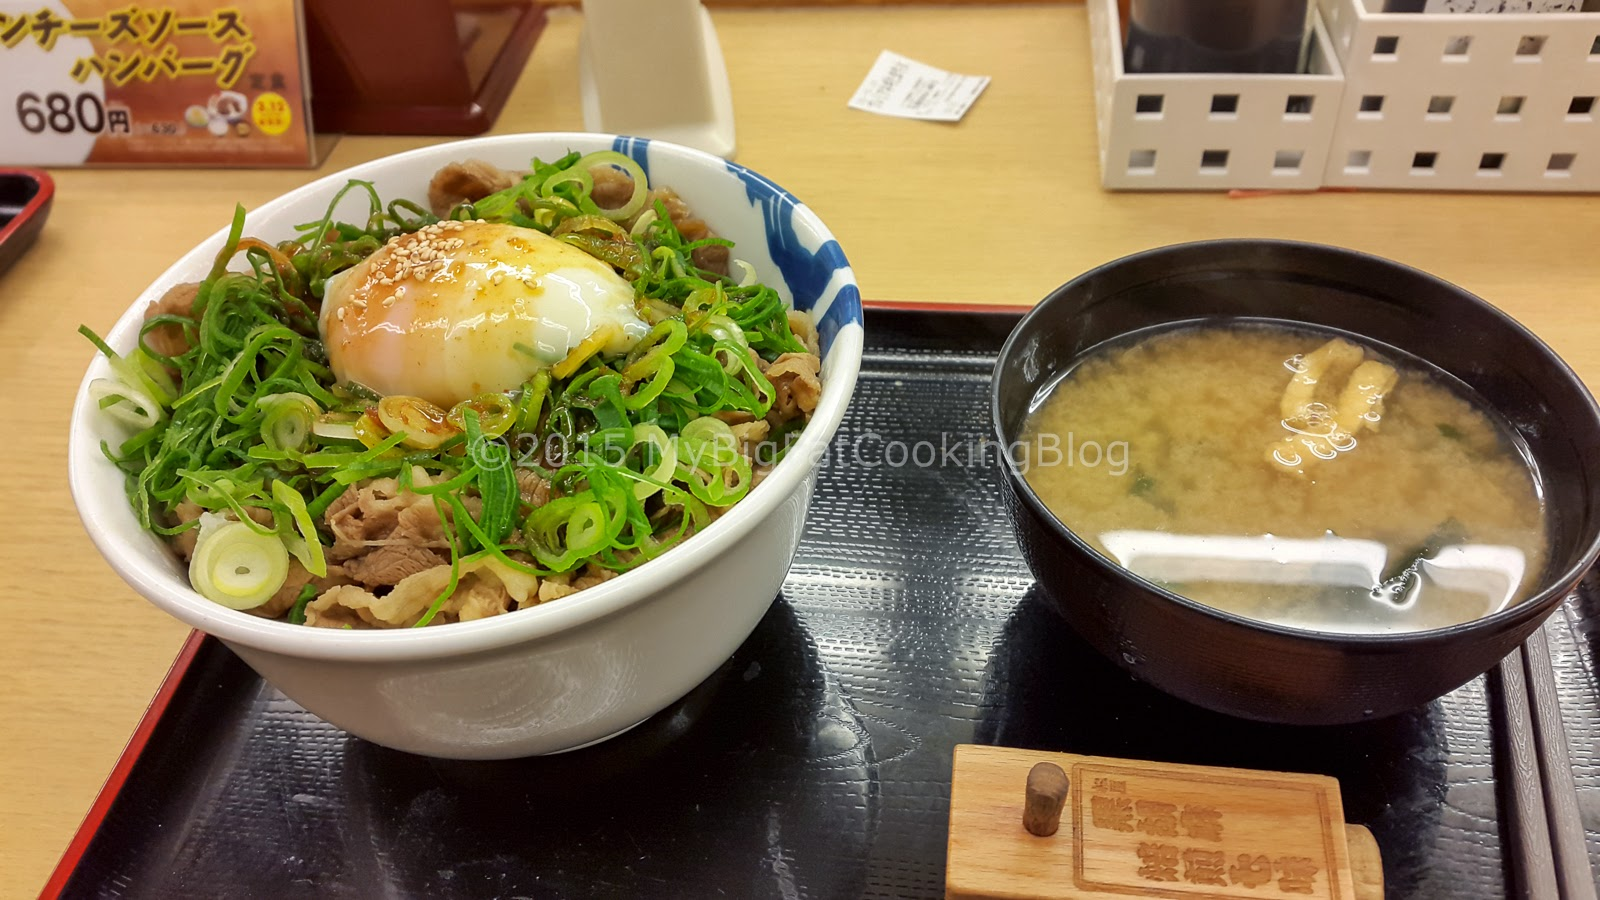 My Big Fat Cooking Blog067Beef Bowl / Gyudon / 牛丼